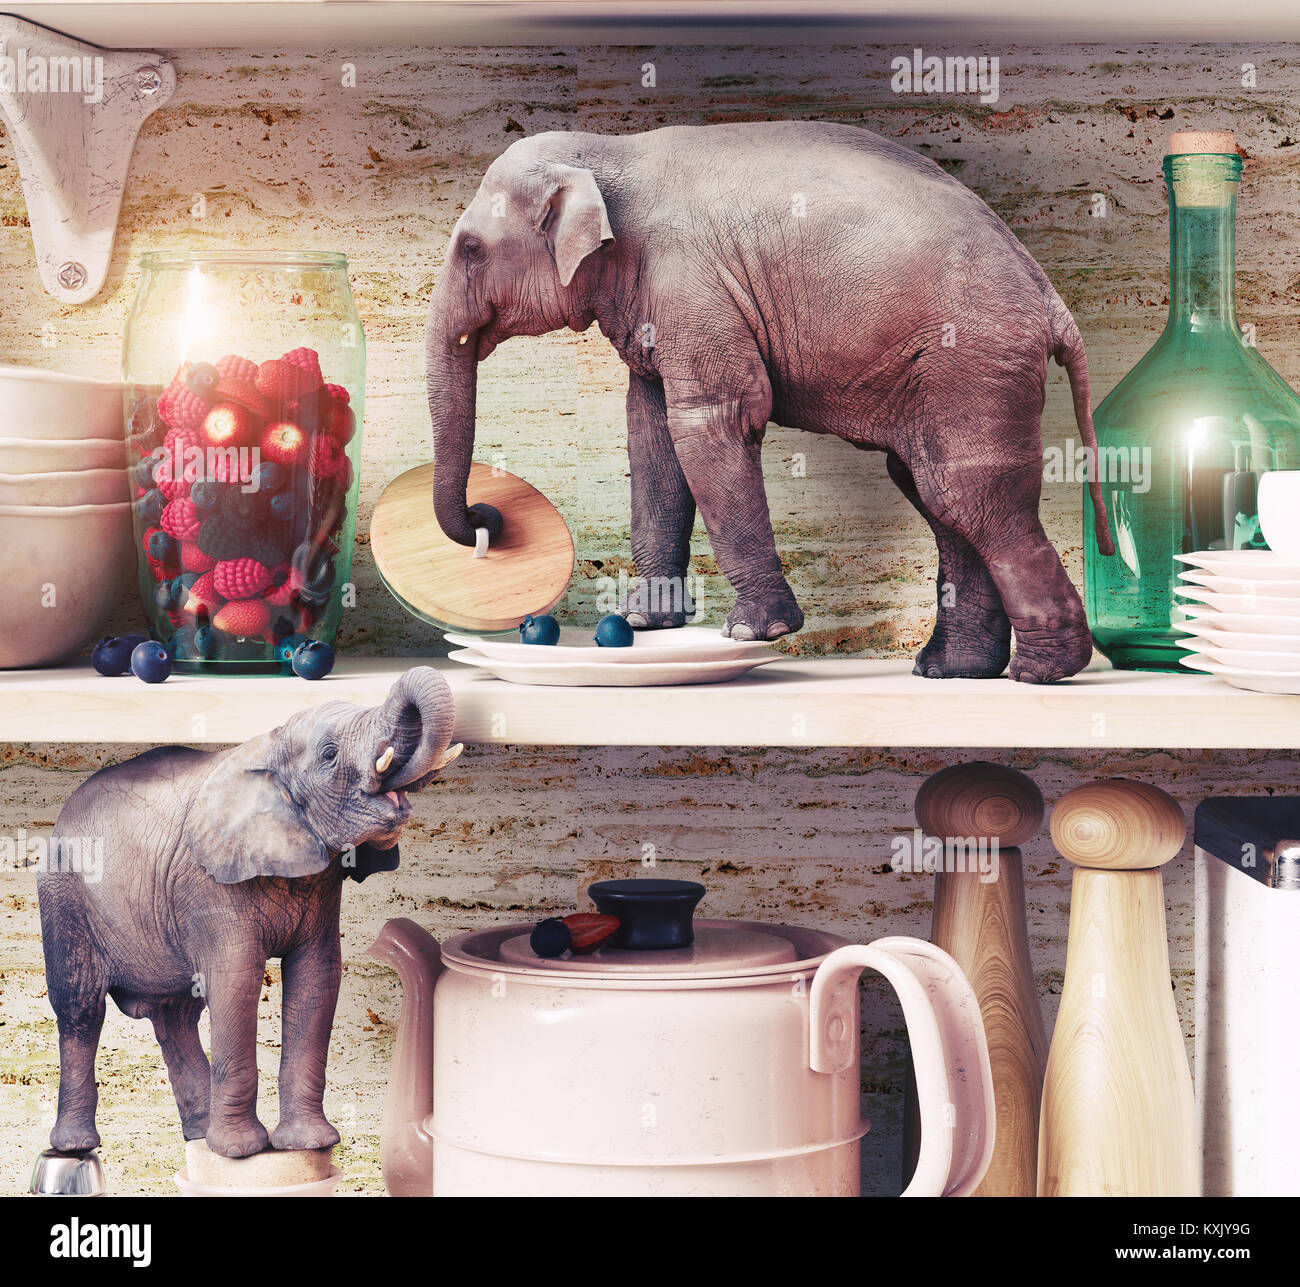 The tiny elephants opens the glass vase with berries. Photo combination concept - Stock Image